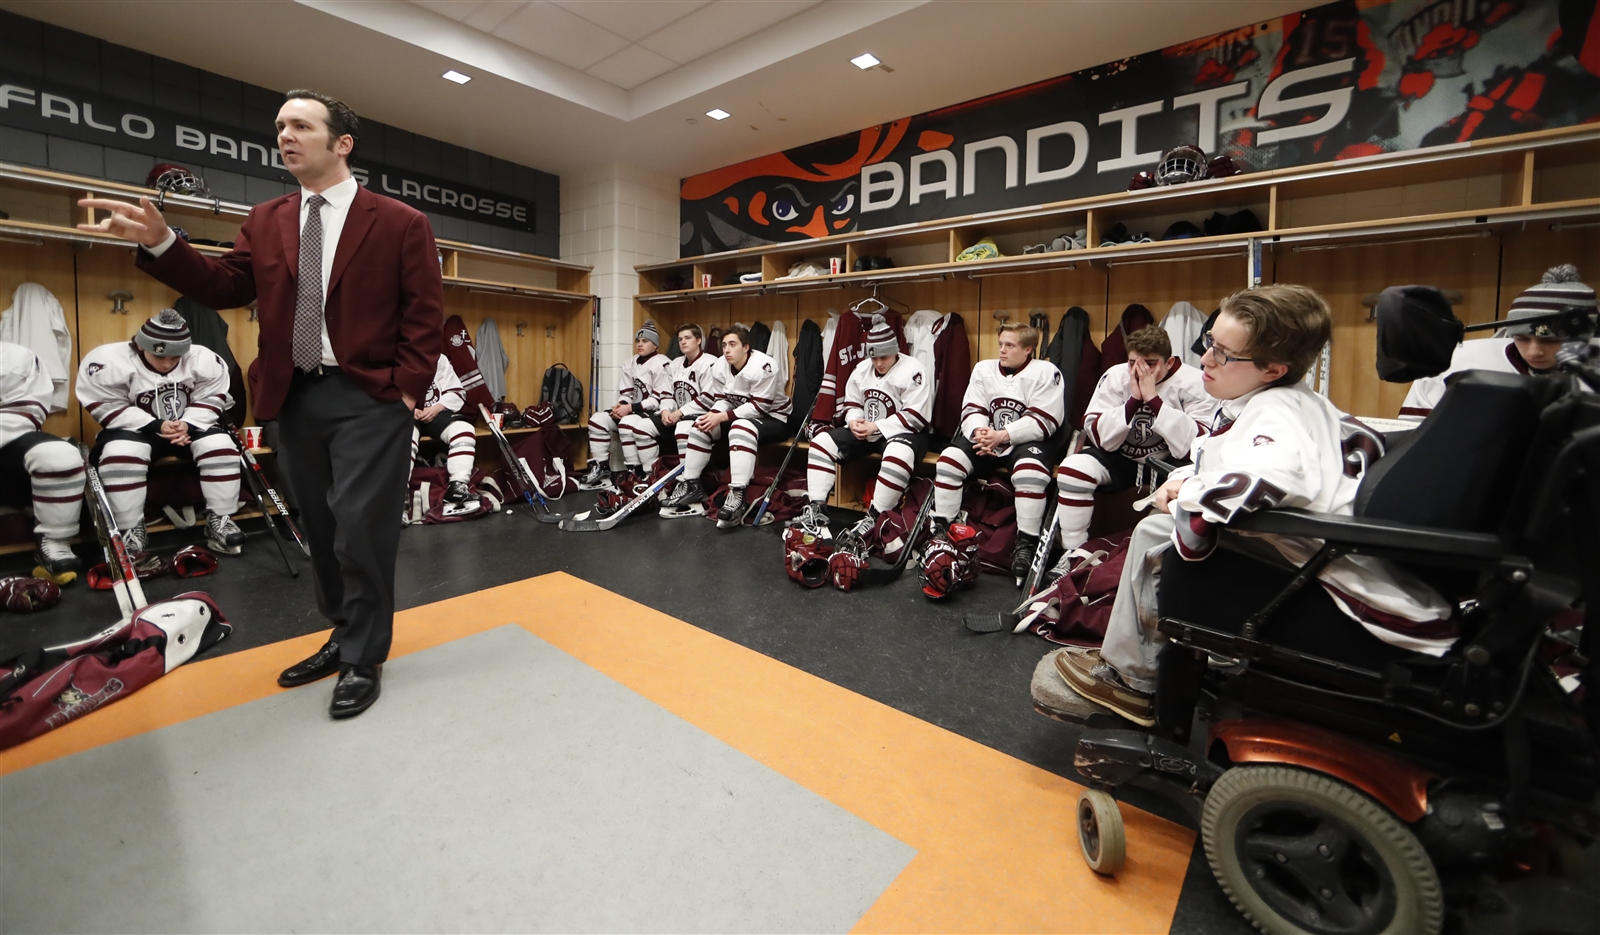 St. Joe's coach Richard Crozier addressed his team prior to playing Canisius for the Niagara Cup.